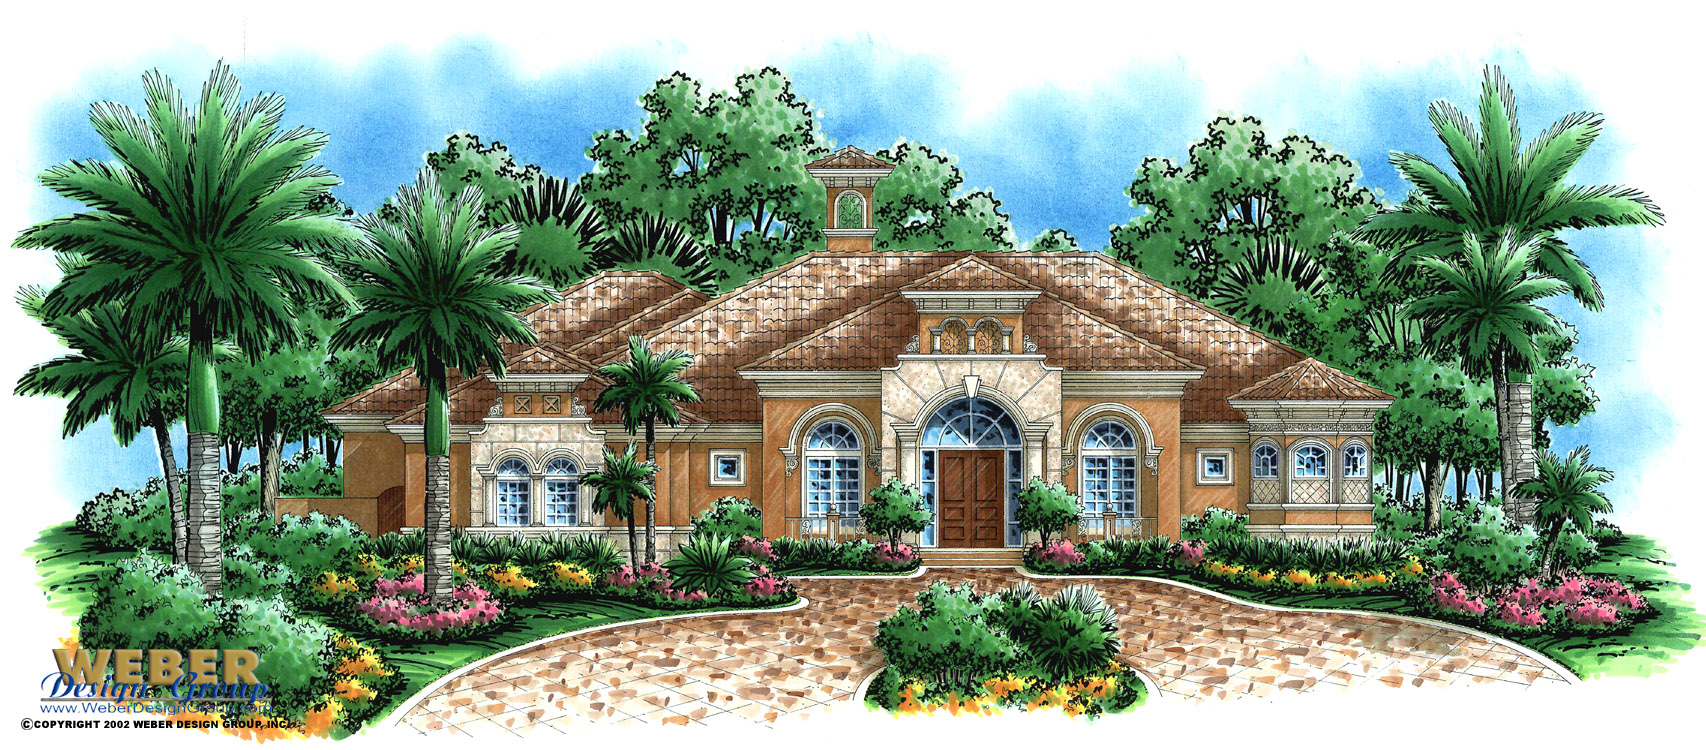 Mt vernon house plan weber design group naples fl for Weber design